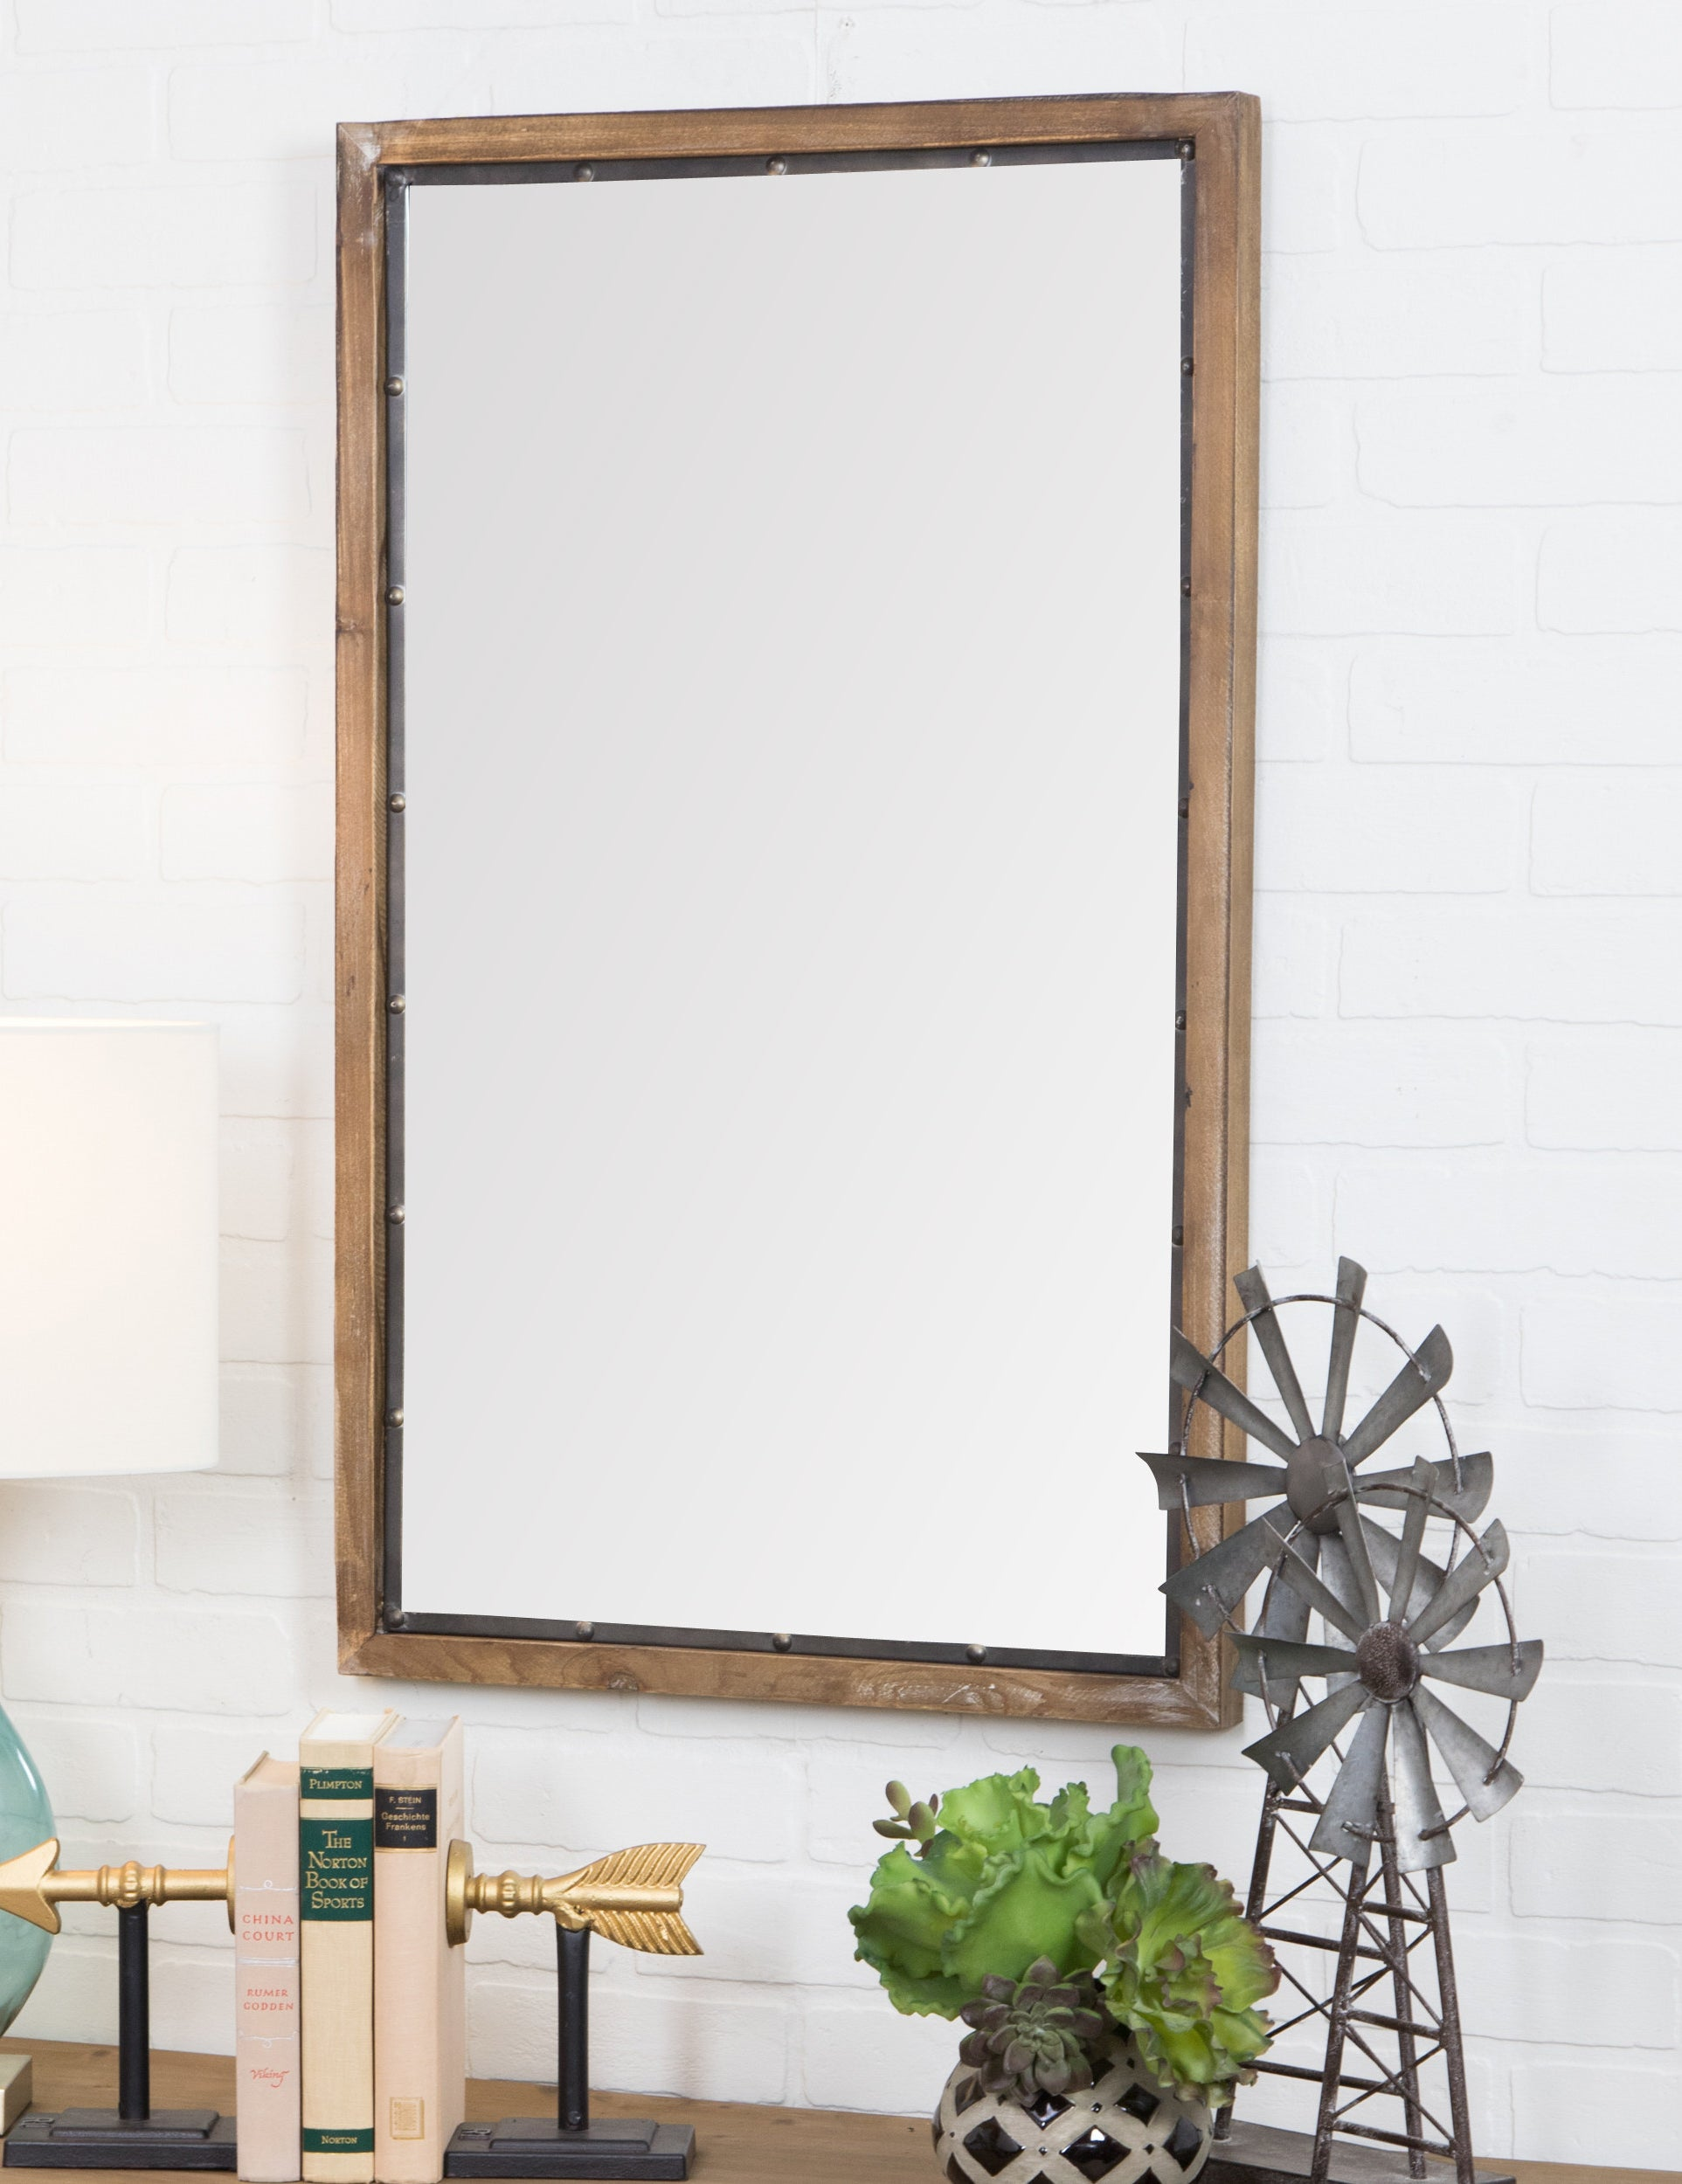 The large mirror with wooden frame